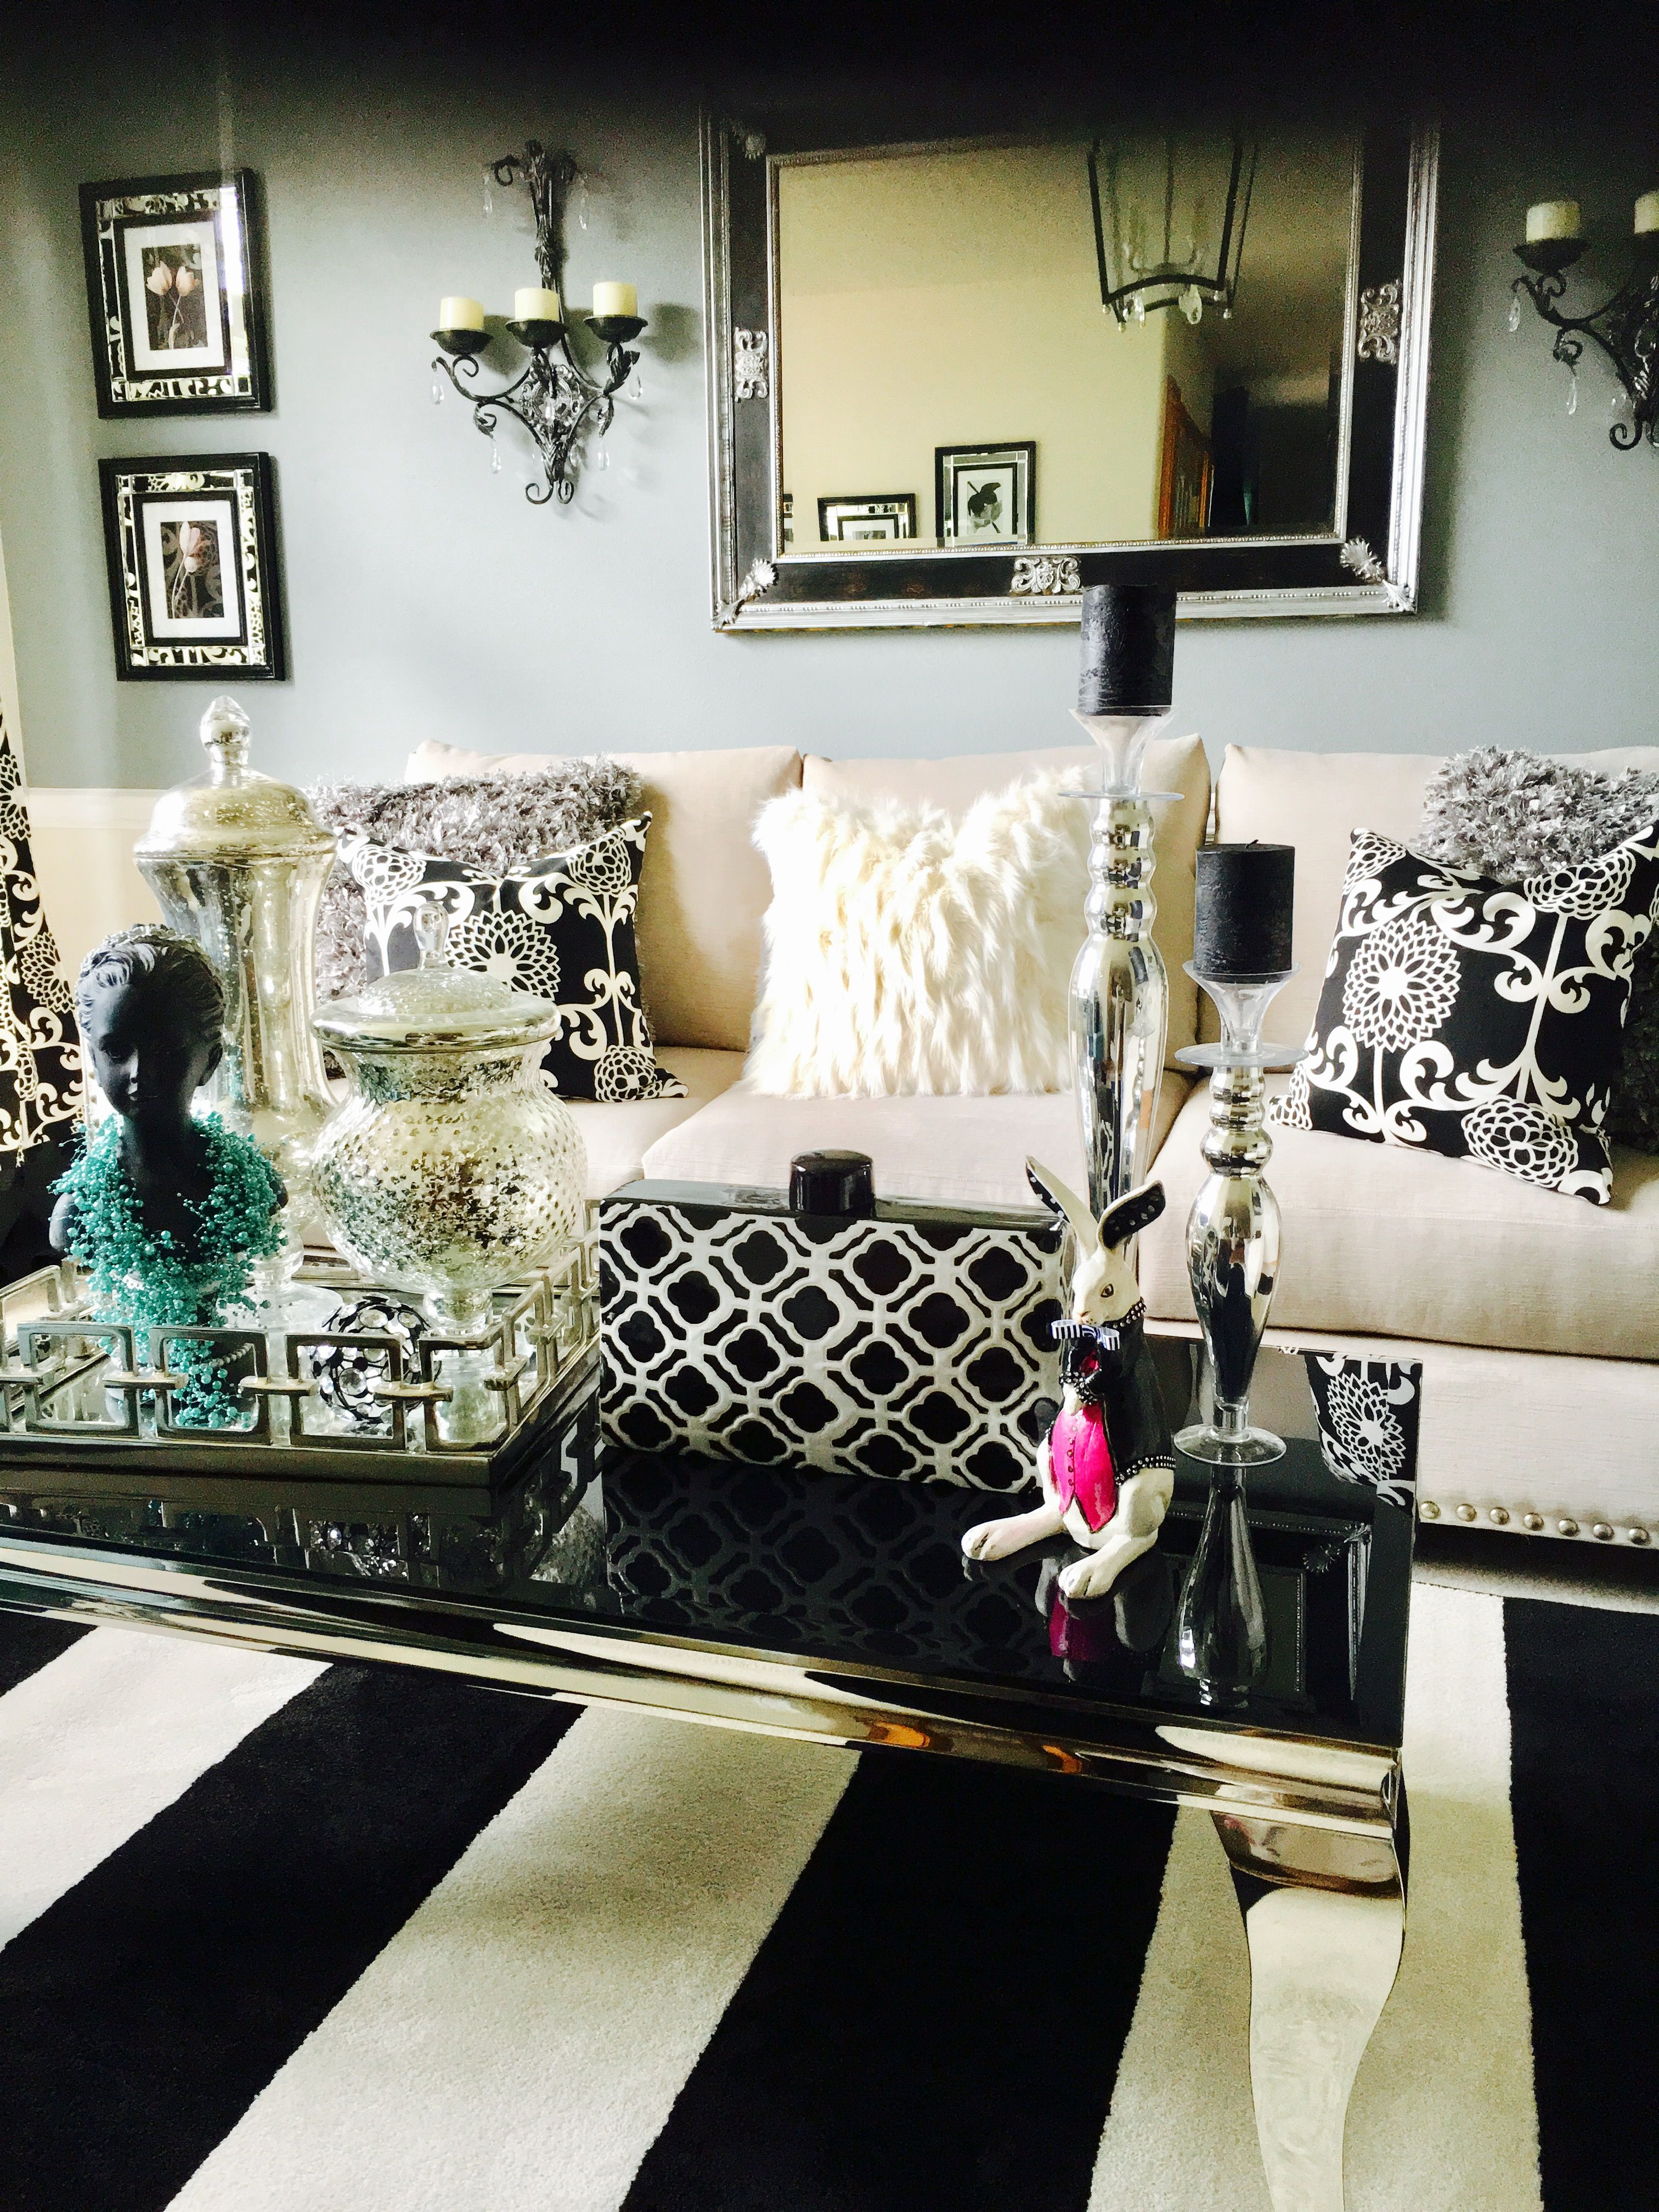 Living room . Black and white stripes, glam , teal | Home ...